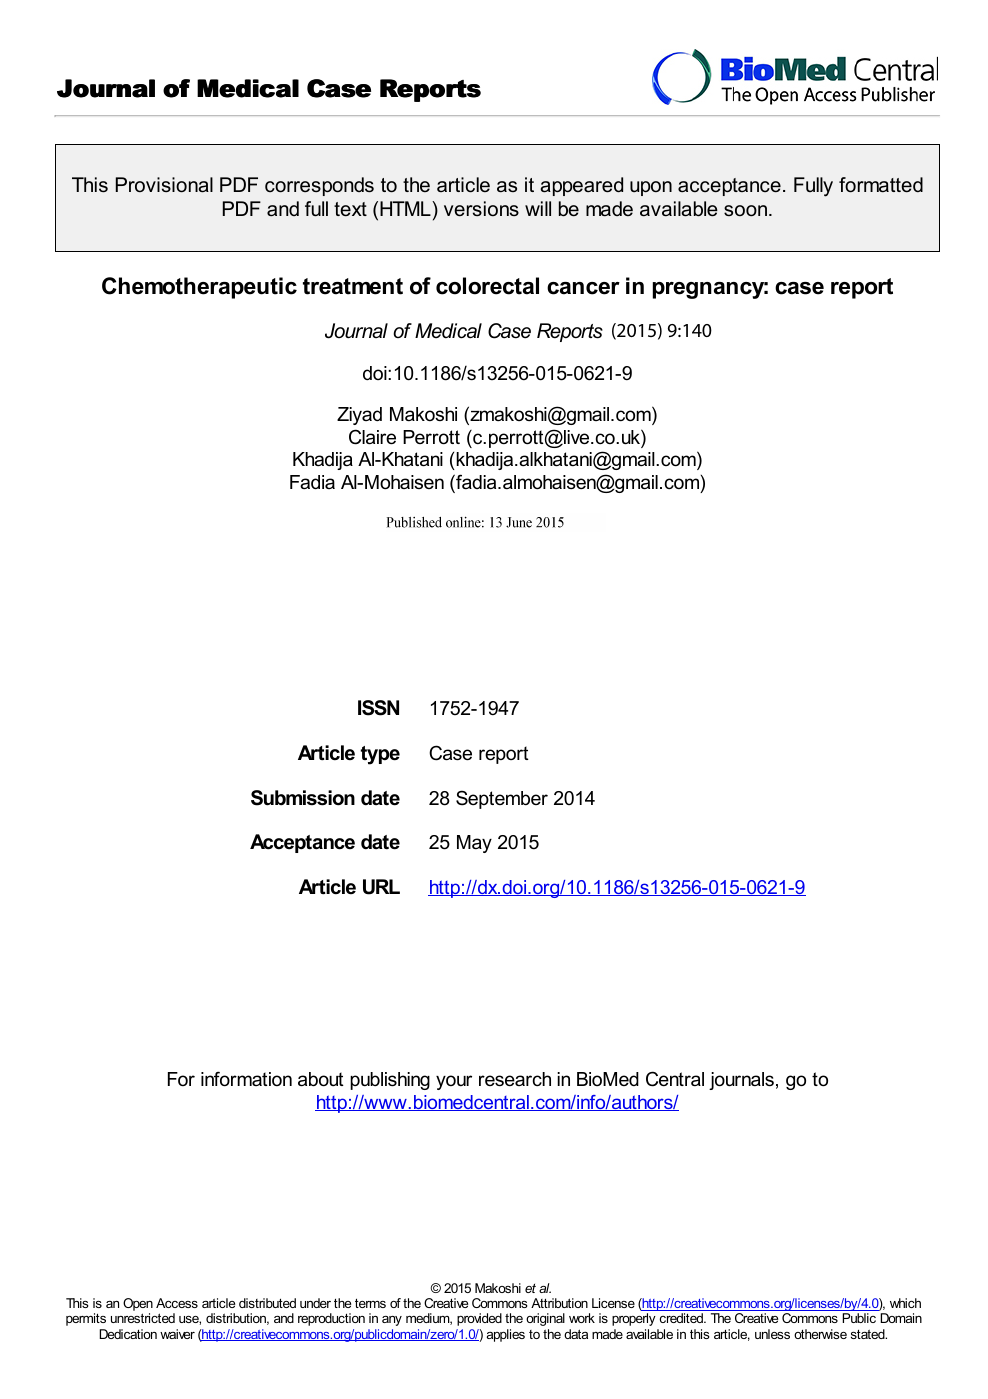 Chemotherapeutic Treatment Of Colorectal Cancer In Pregnancy Case Report Topic Of Research Paper In Clinical Medicine Download Scholarly Article Pdf And Read For Free On Cyberleninka Open Science Hub